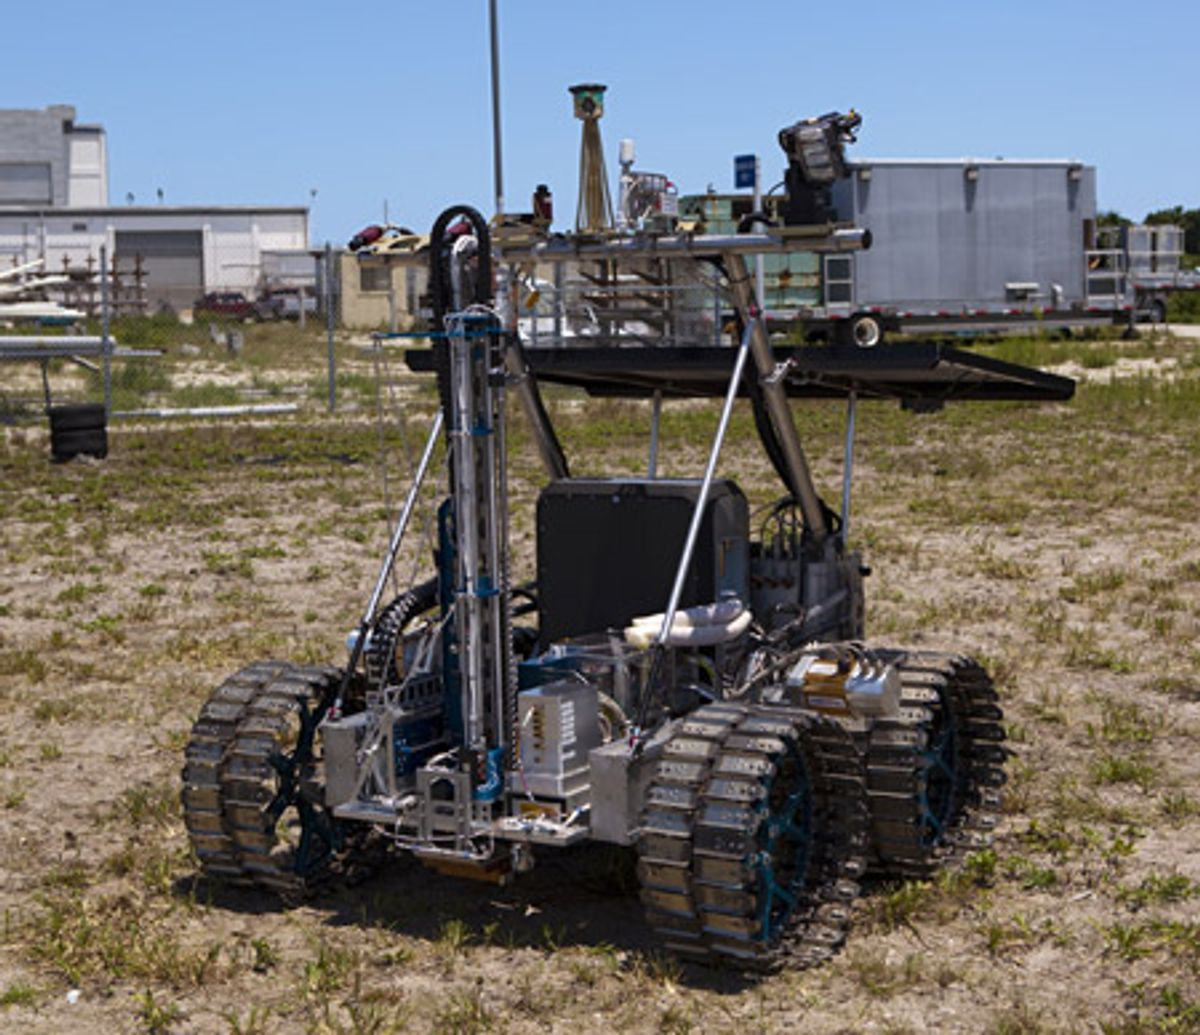 NASA Testing Rover to Prospect for Water on the Moon